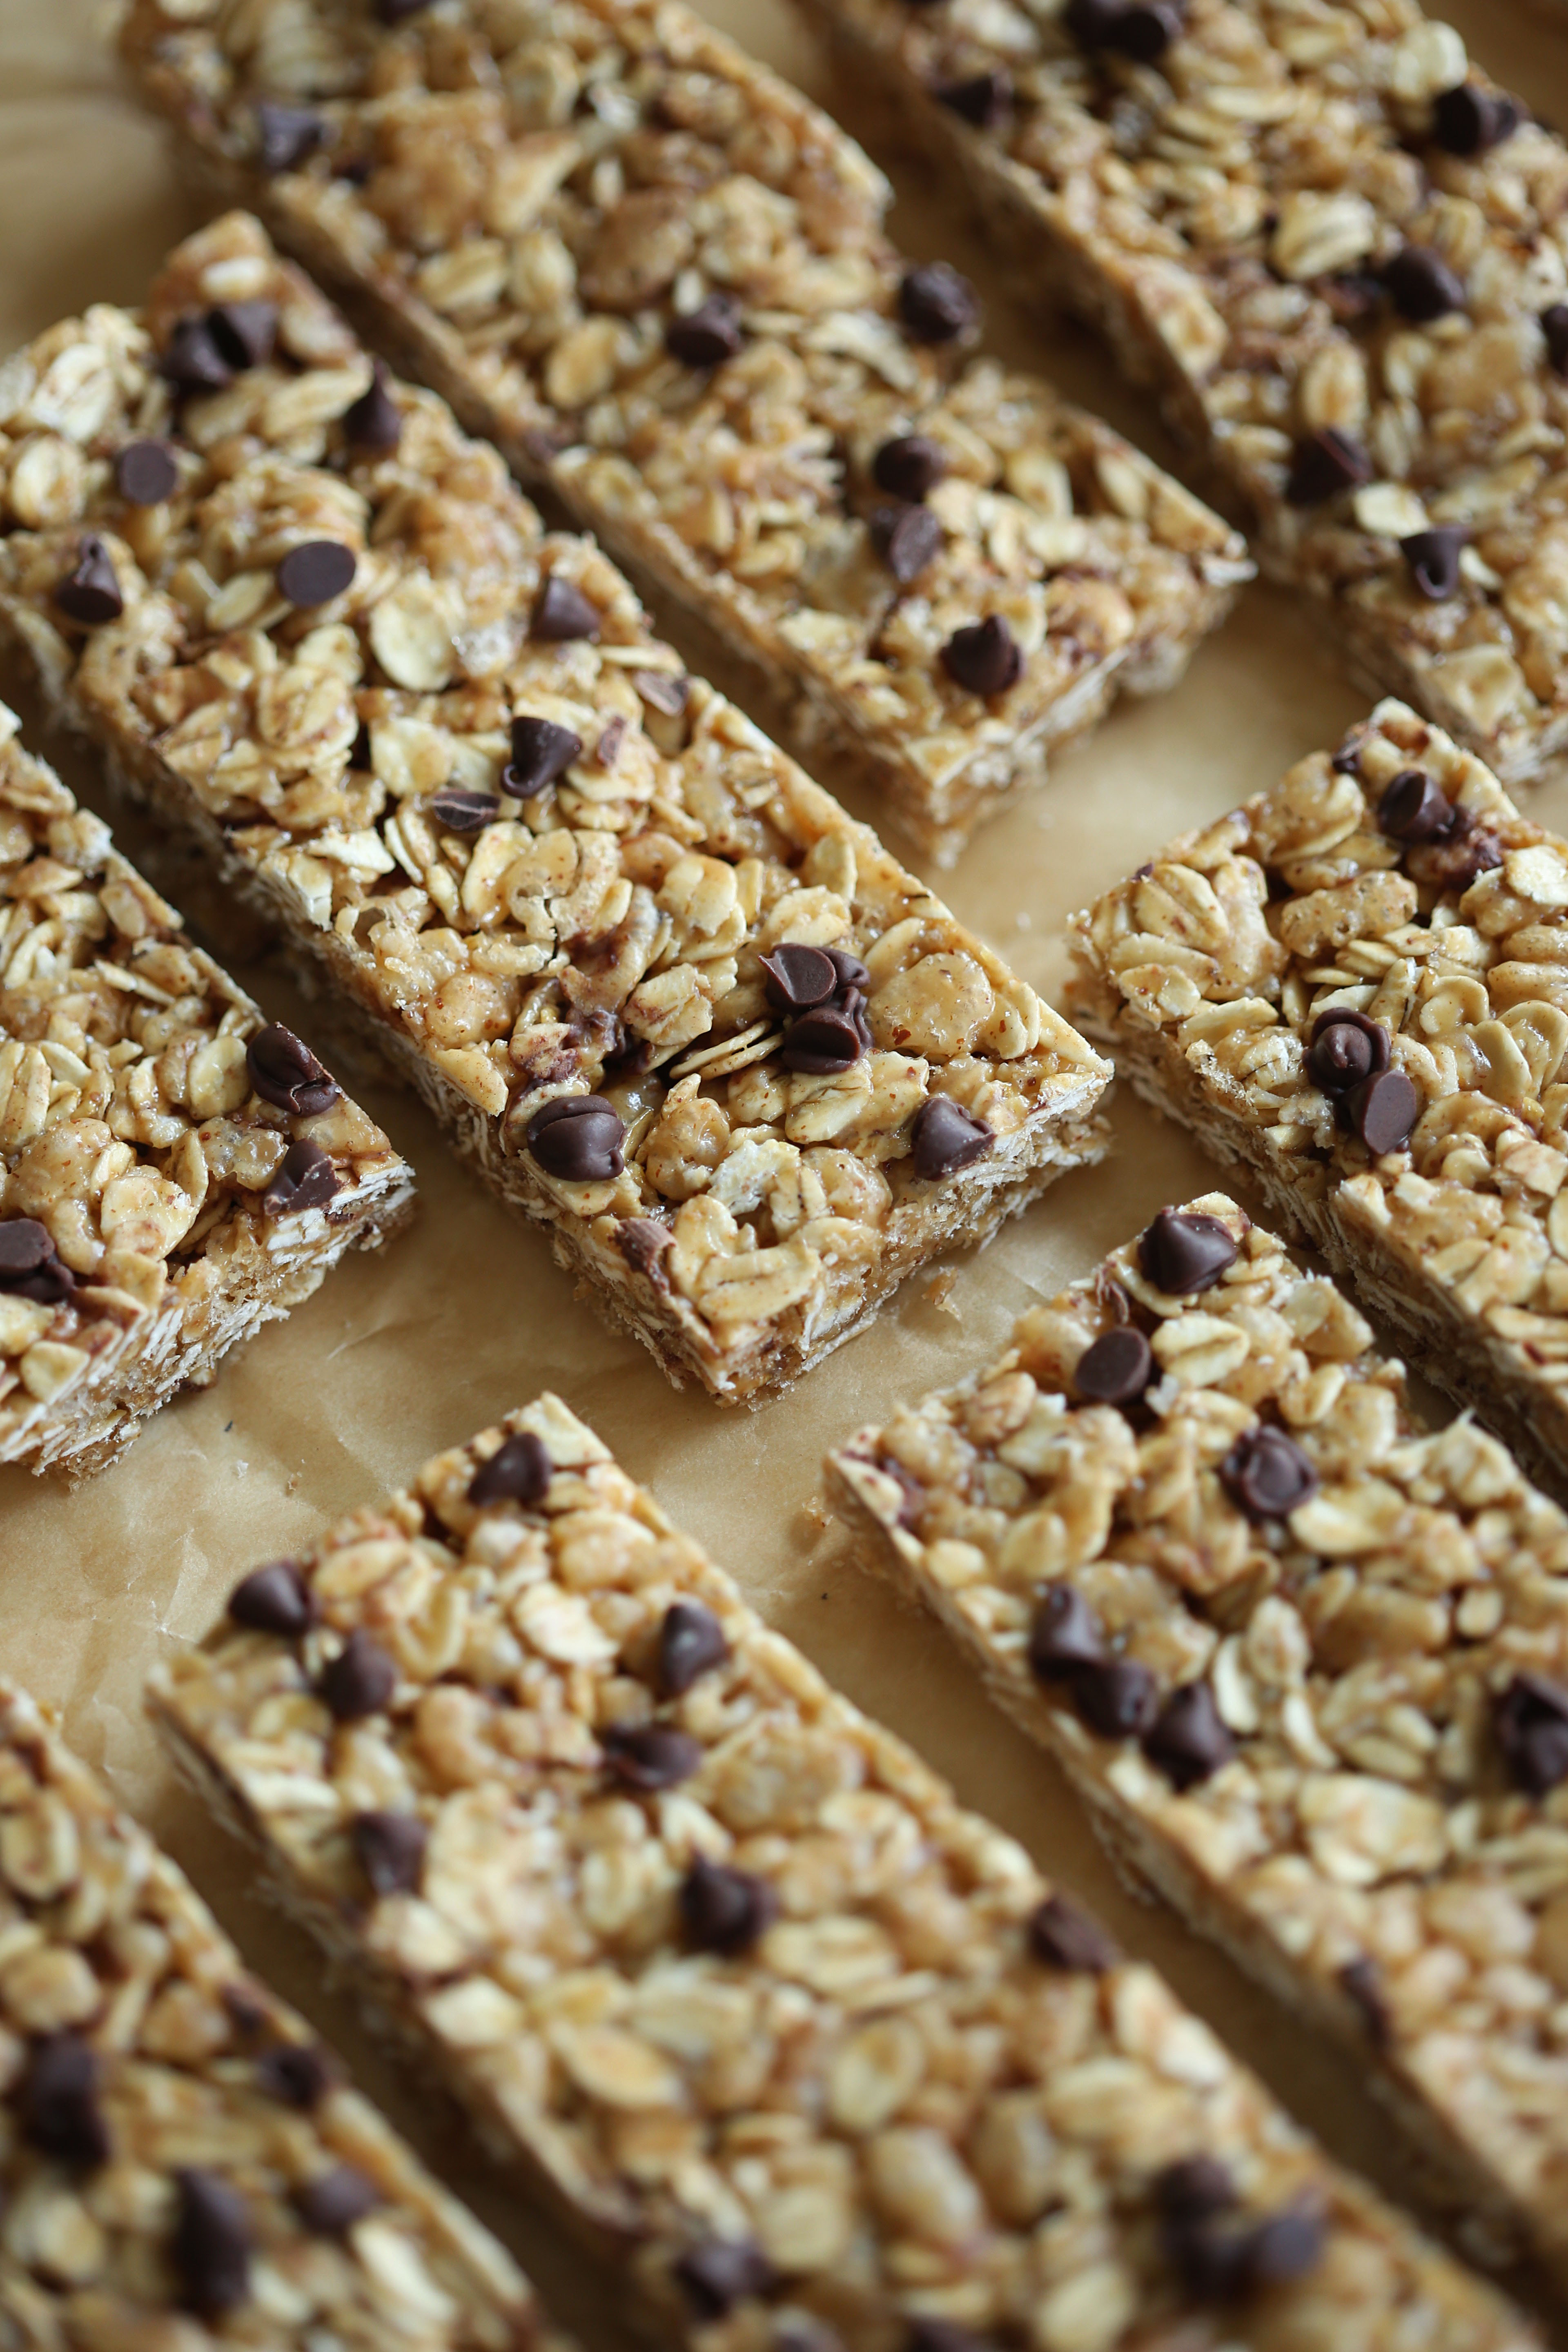 These No Bake Almond Butter Granola Bars are healthy, delicious and can easily be made in just 15 minutes! Perfect to grab on-the-go in the mornings too!